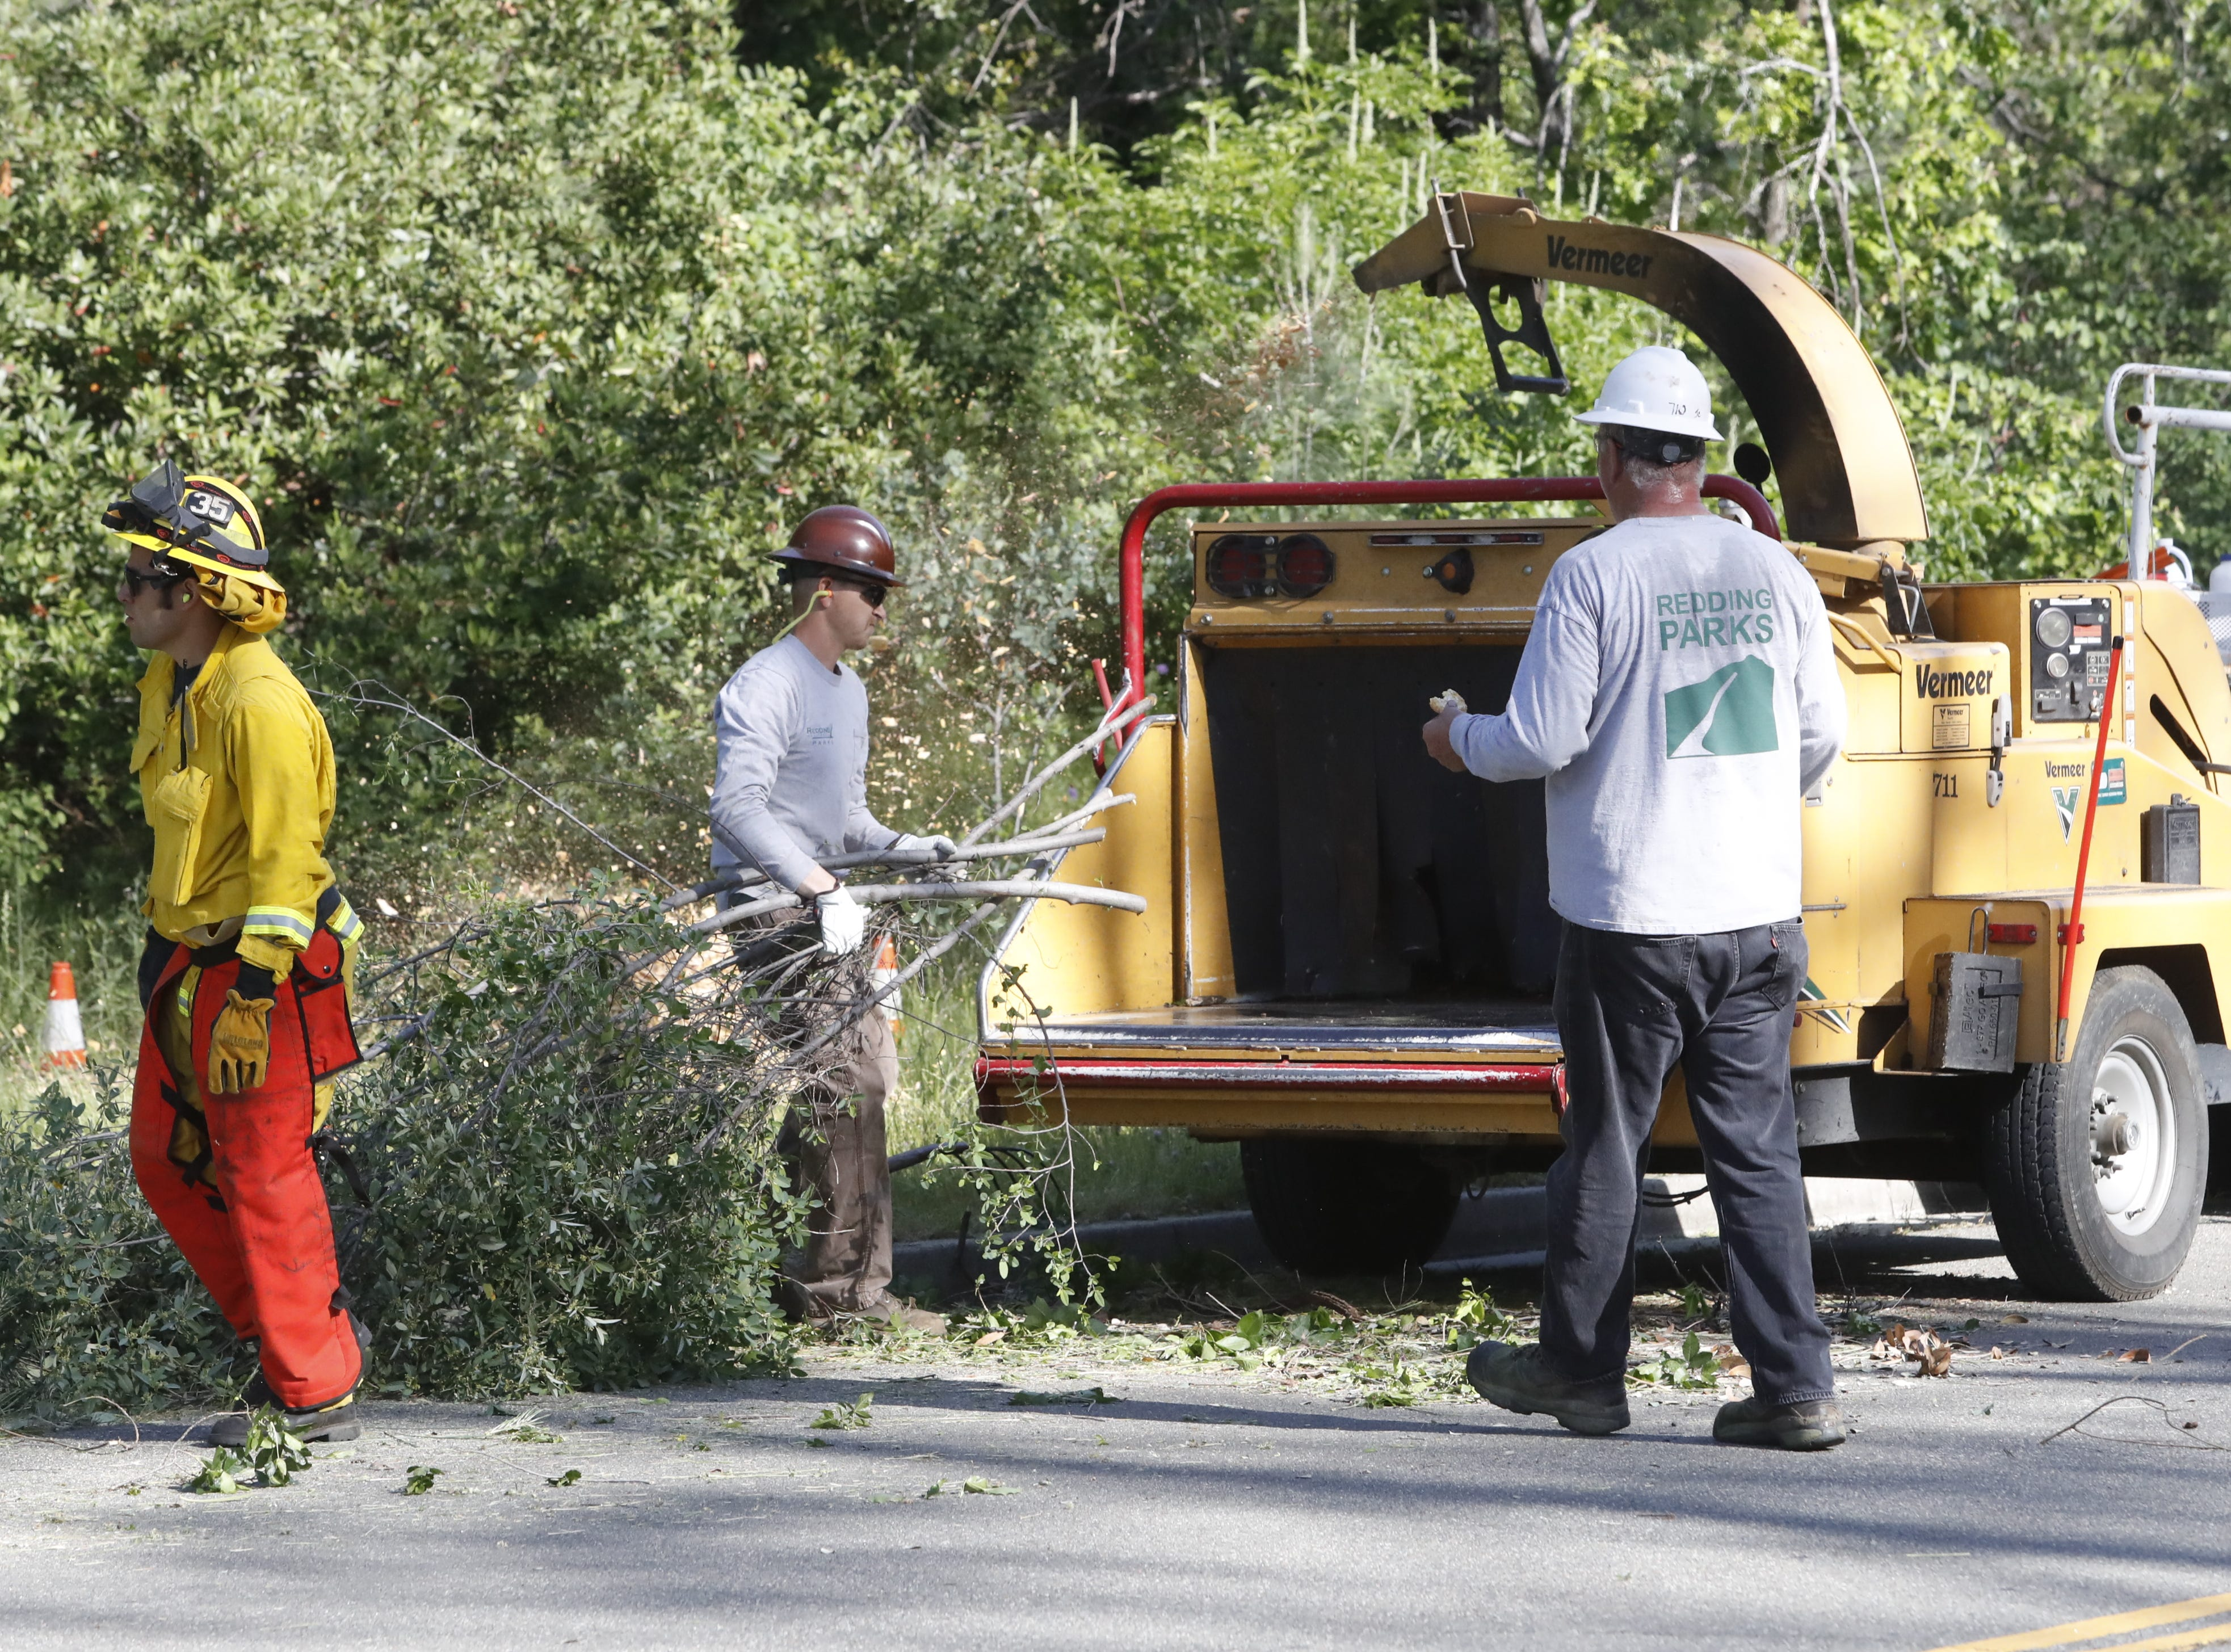 City workers and citizen volunteers hit the hillsides along Blazingwood Drive near the Country Heights subdivision to clear overgrown grass and brush in a defensible-space operation for Wildfire Community Preparedness Day.